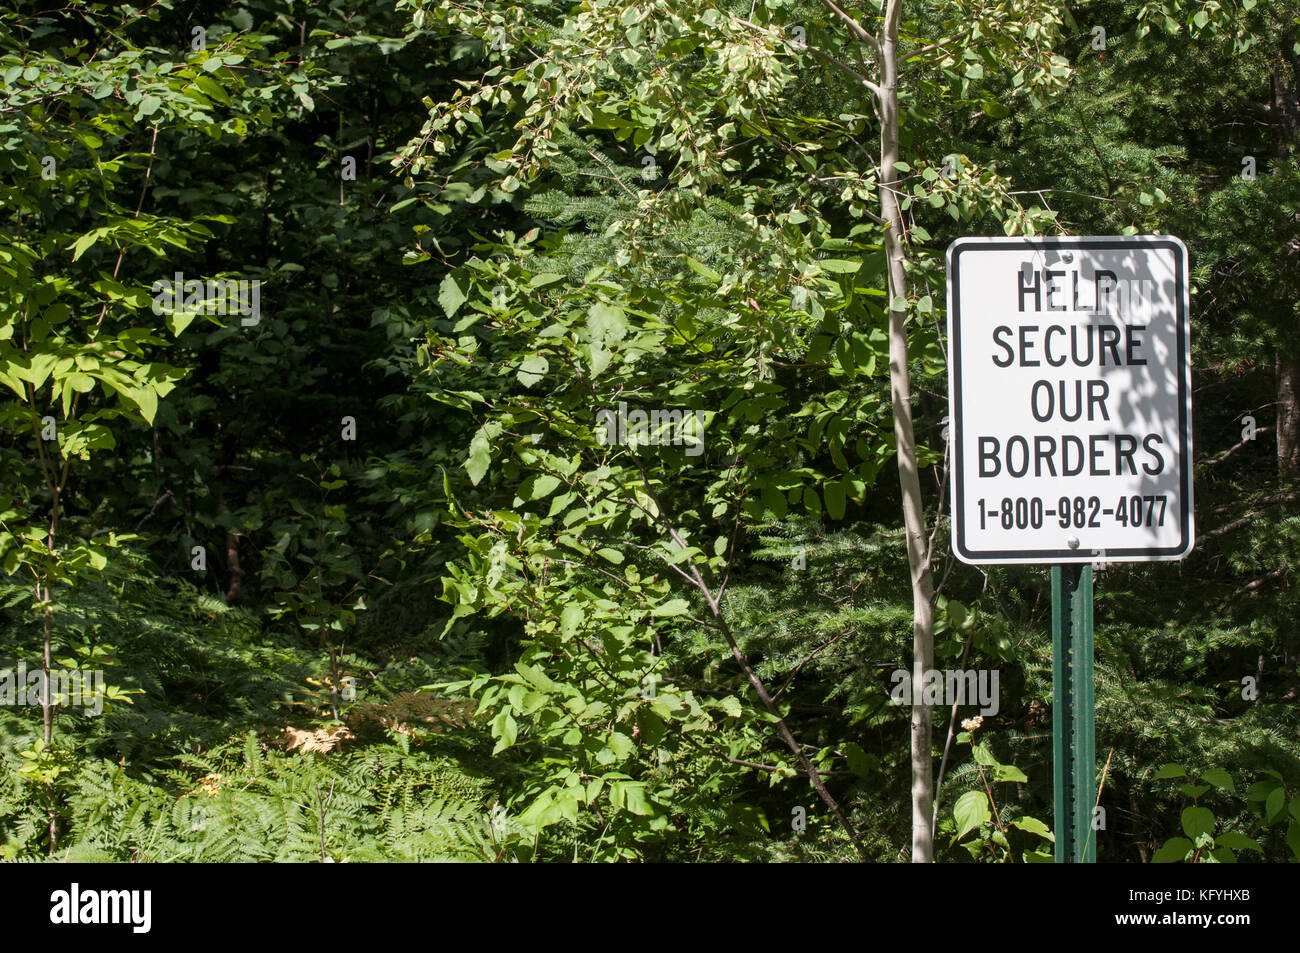 Grand Marais, Minnesota. Secure our border sign on a trail that leads to Canada through the Superior National Forest. - Stock Image